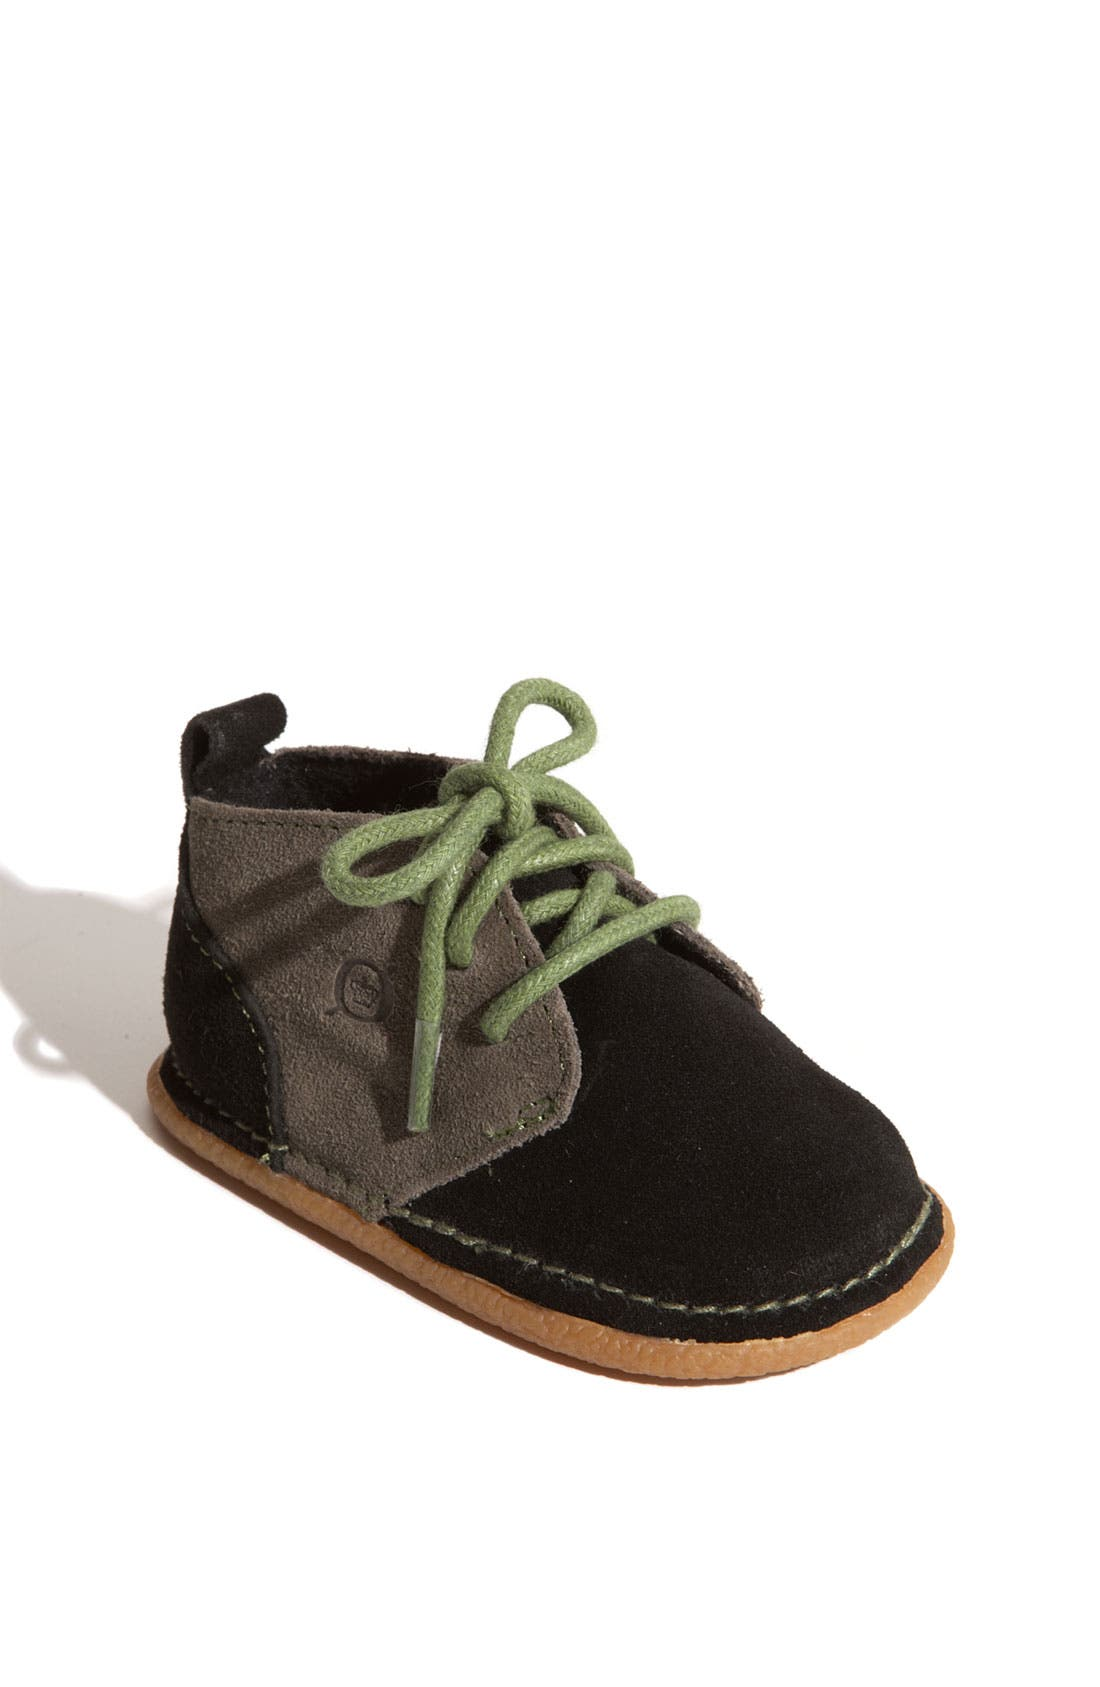 Alternate Image 1 Selected - Nubørn 'Baxter' Lace-Up Bootie (Baby)